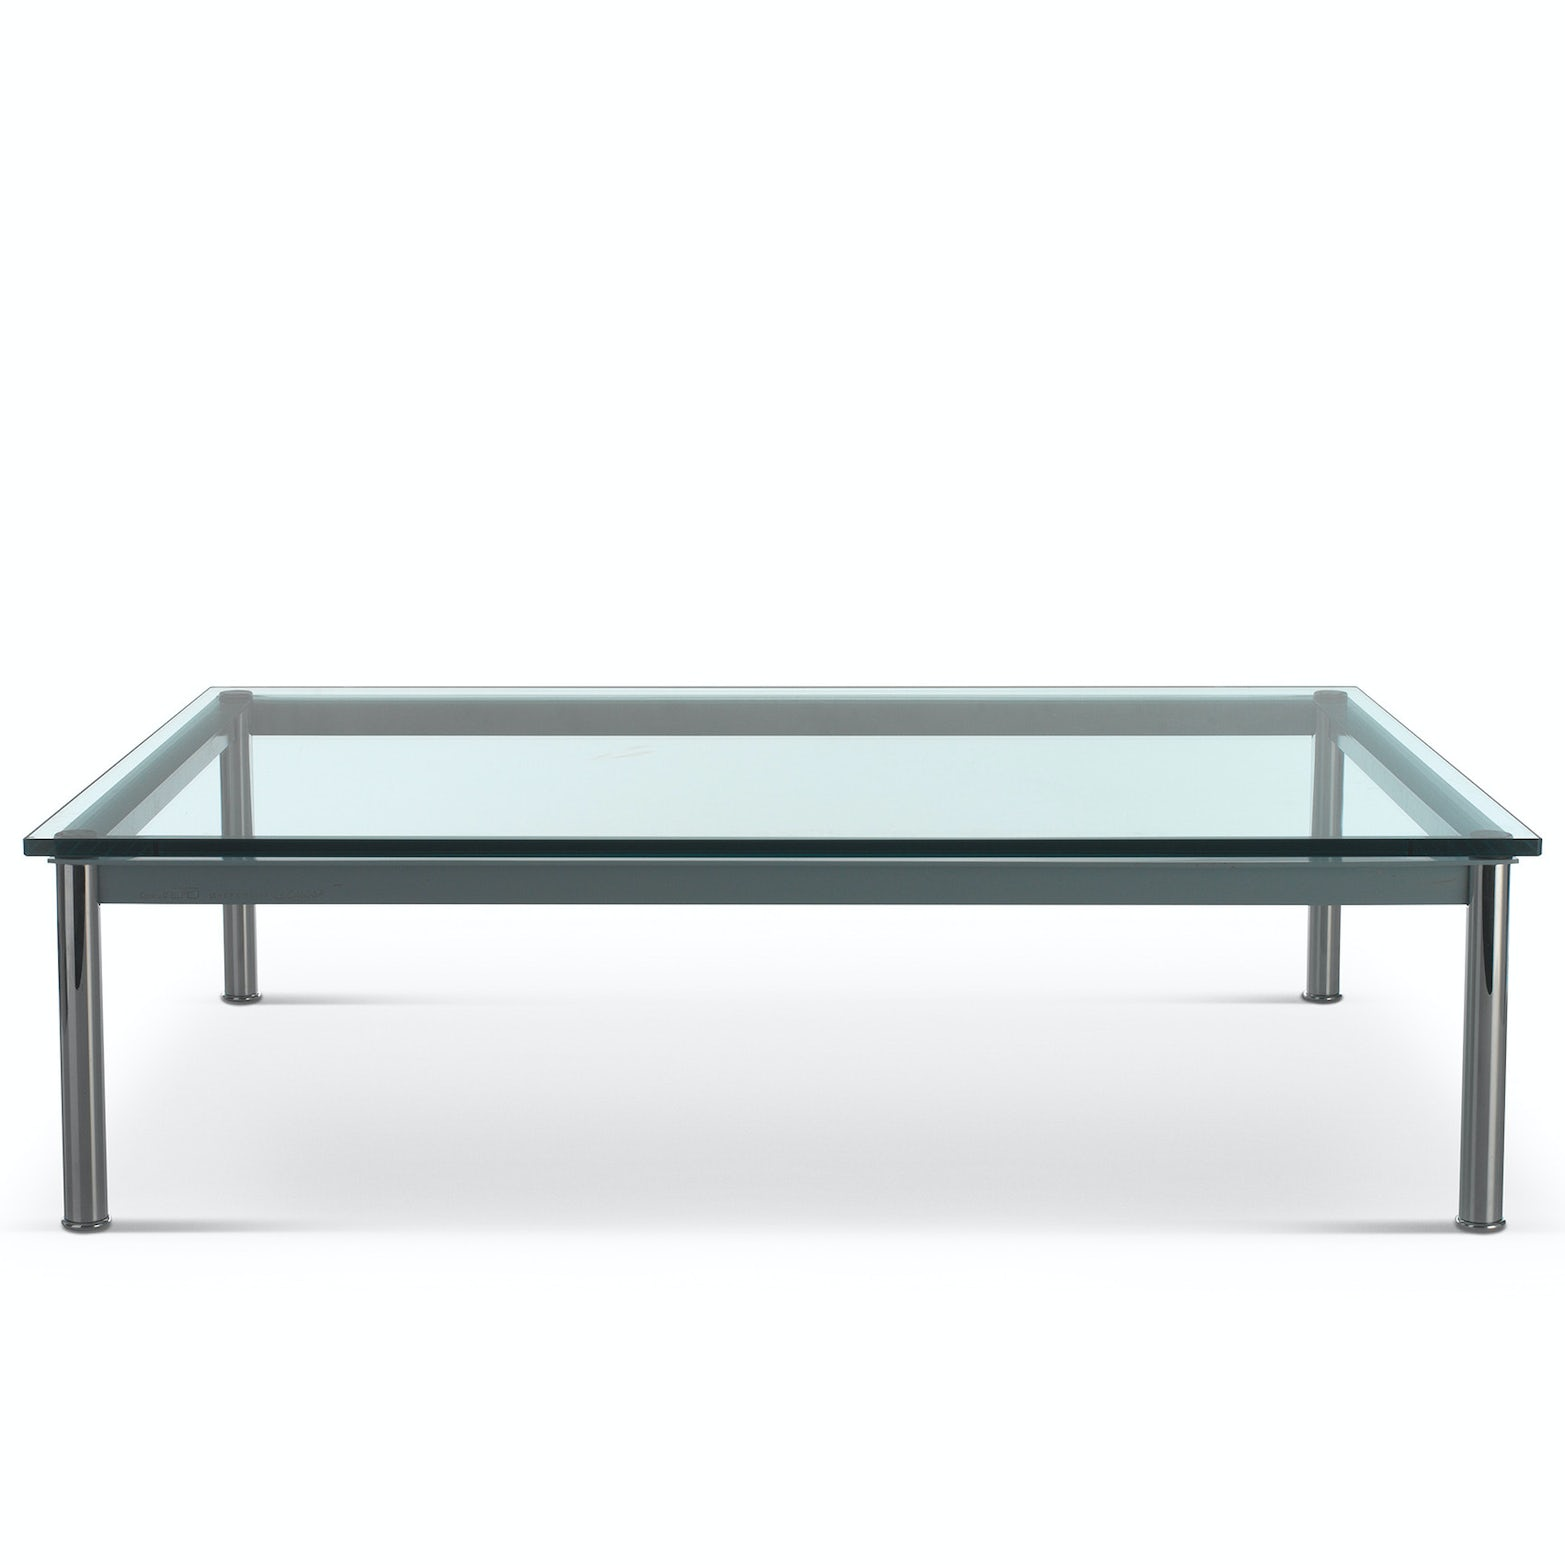 LC10 P low table Corbusier Jeanerett Perriand Cassina 2